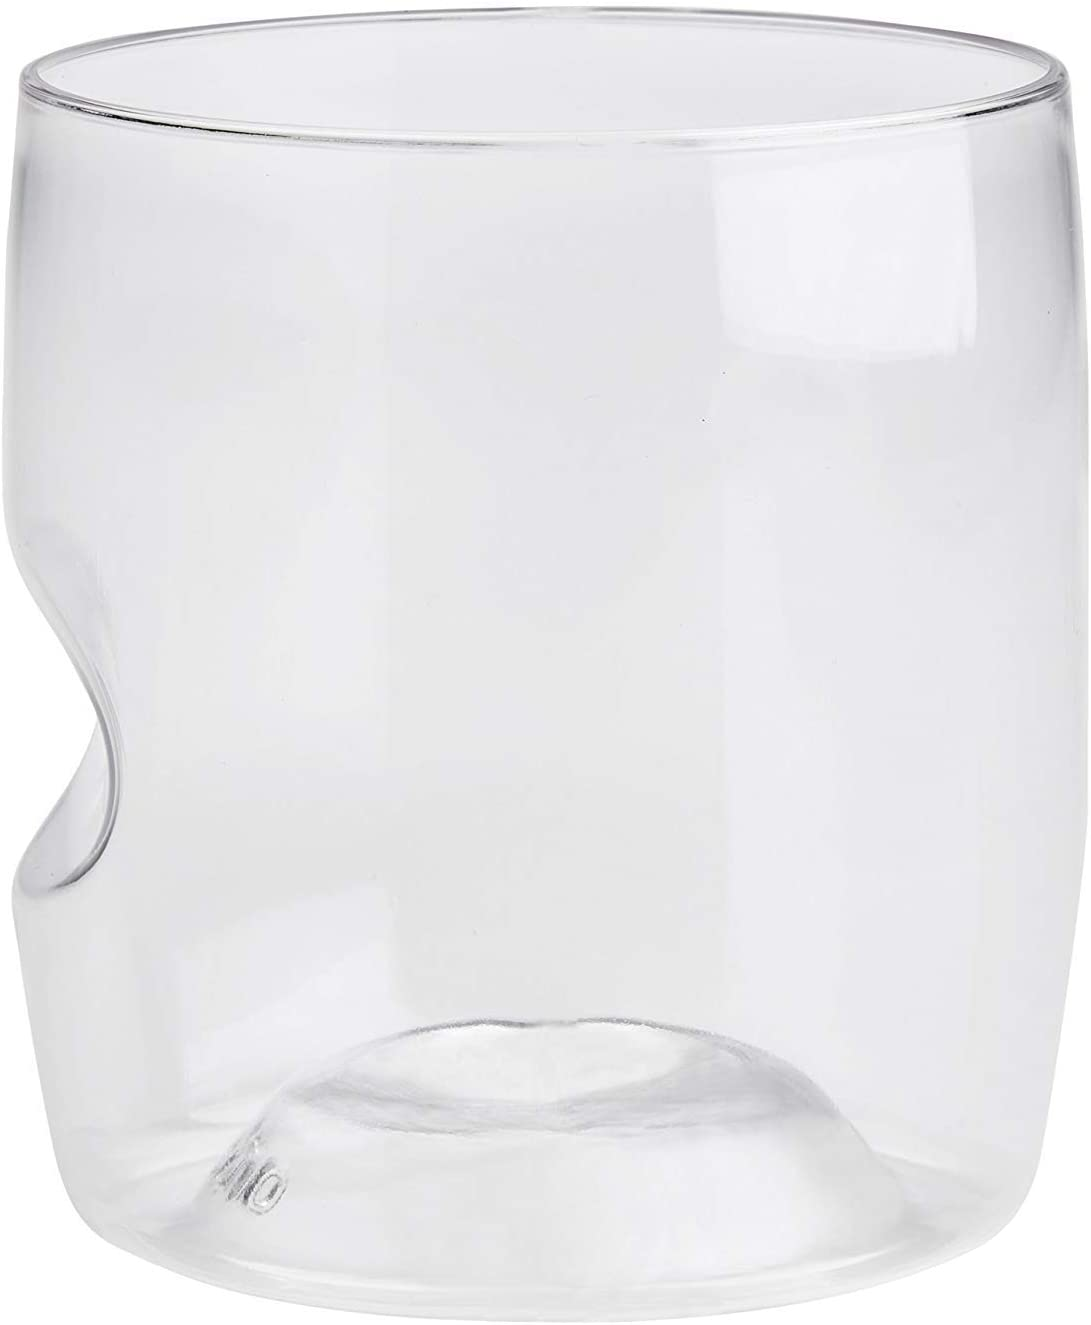 Govino Dishwasher Safe Flexible Shatterproof Recyclable Whiskey Glasses 14-ounce, Set of 4